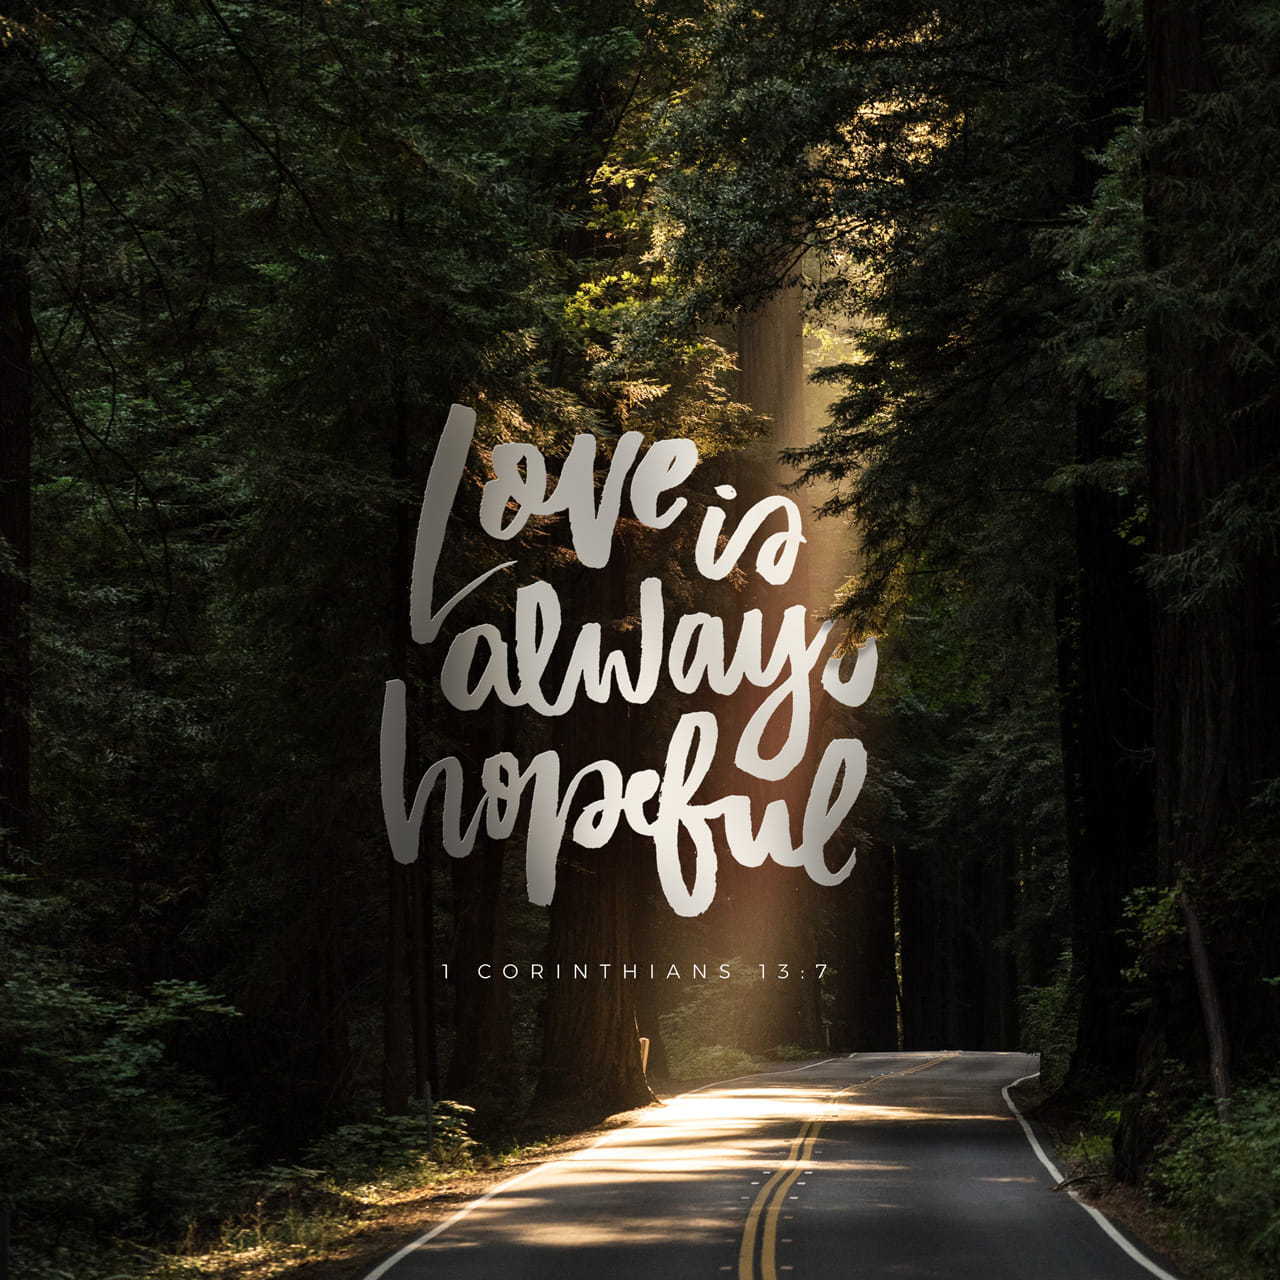 1 Corinthians 13:6-7 Love does not delight in evil but rejoices with the truth. It always protects, always trusts, always hopes, always perseveres. | New International Version (NIV)